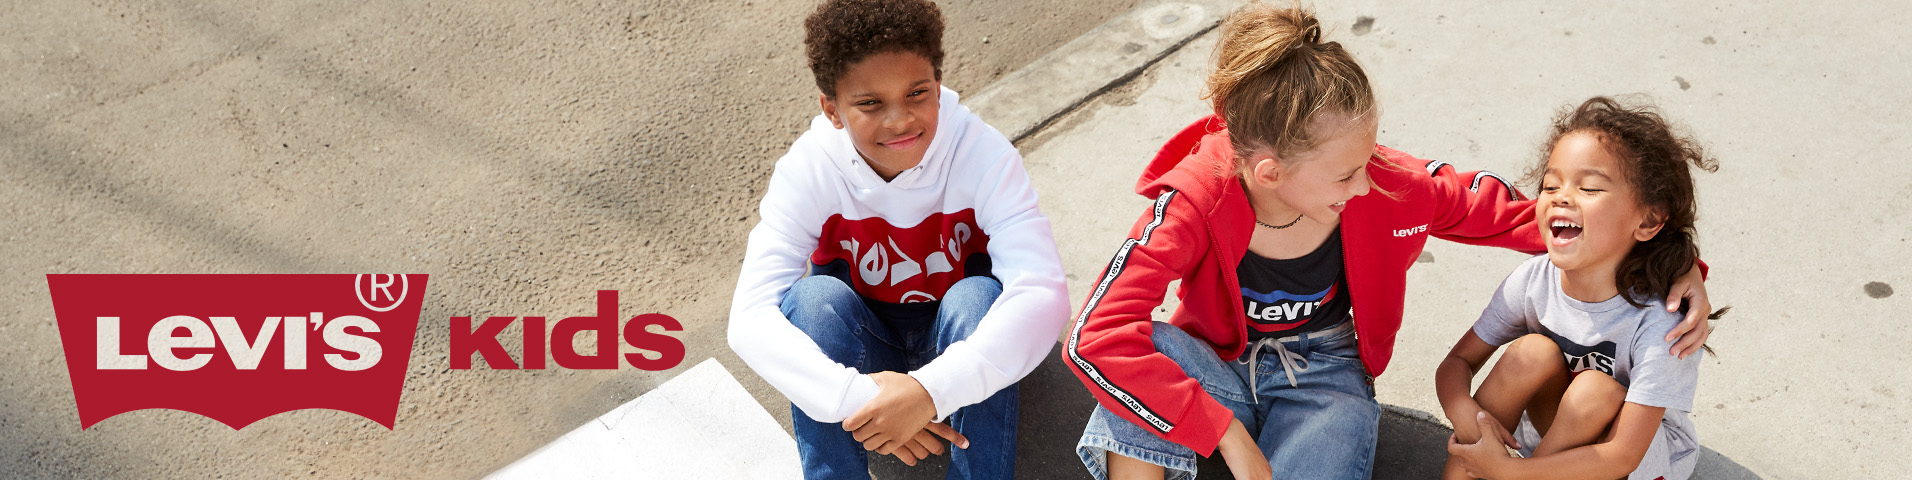 Levi's® Kids' Clothing Sale | Girls & Boys | ZALANDO UK